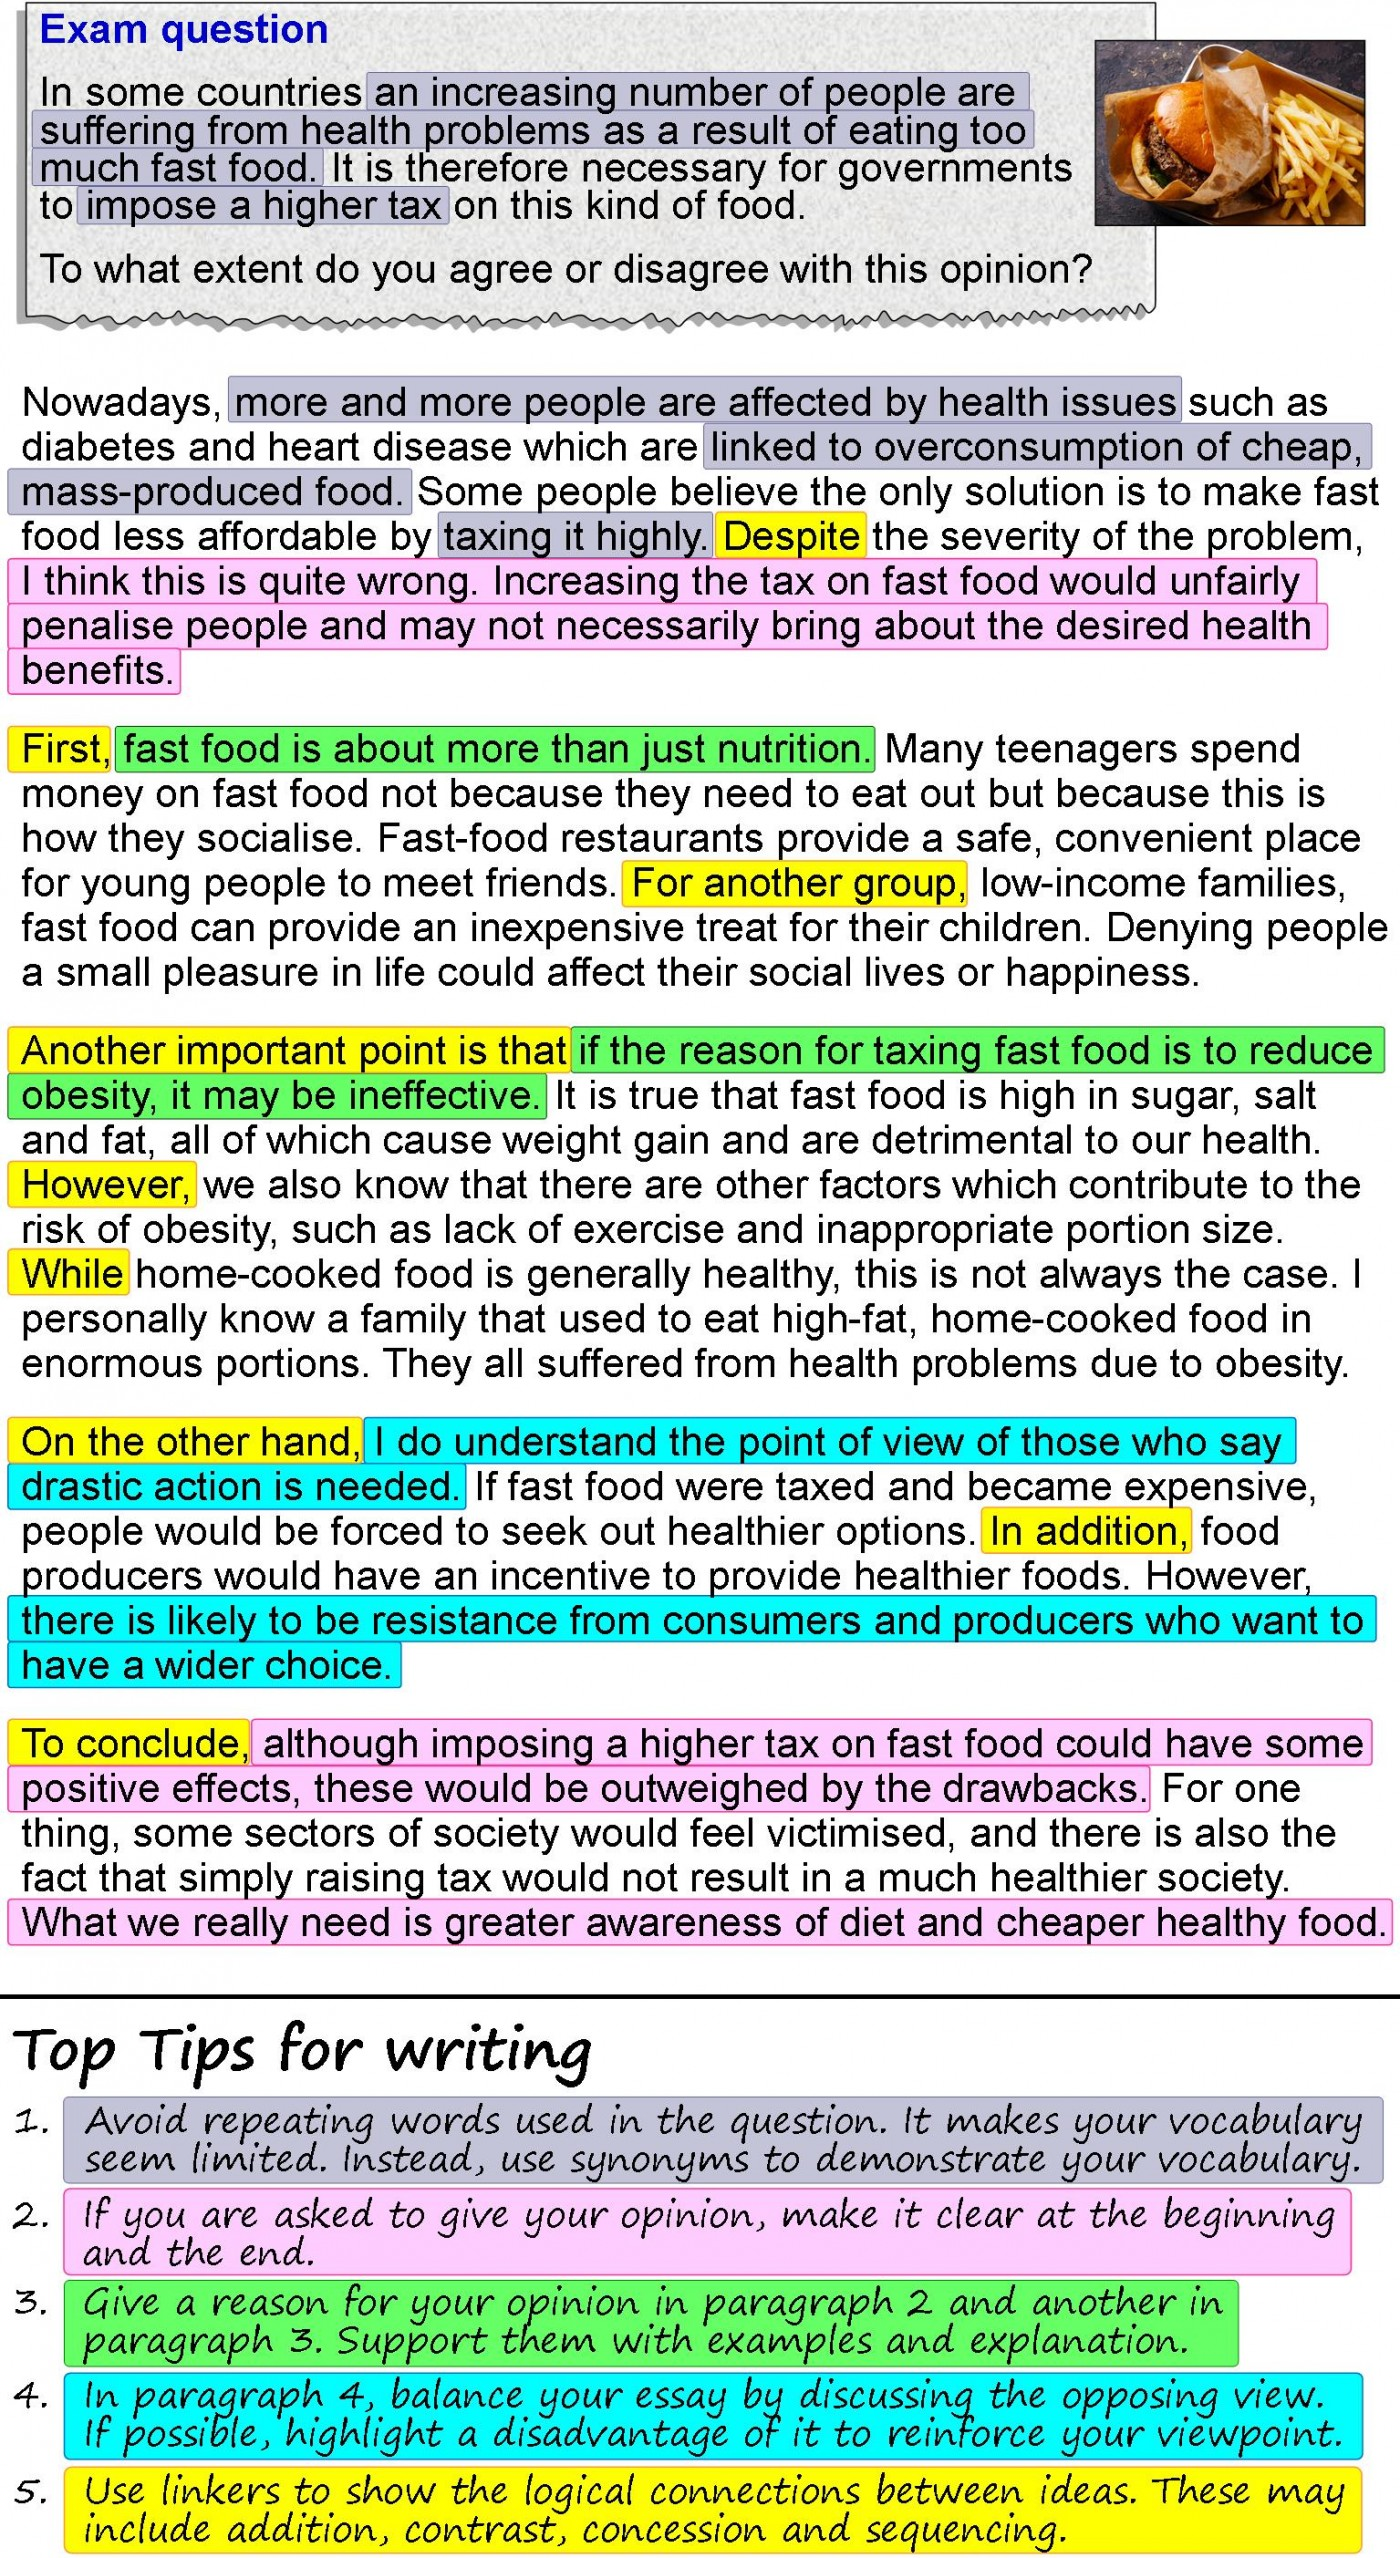 001 Opinion Essay About Fast Food Example An 4 Unbelievable British Council Short 1400